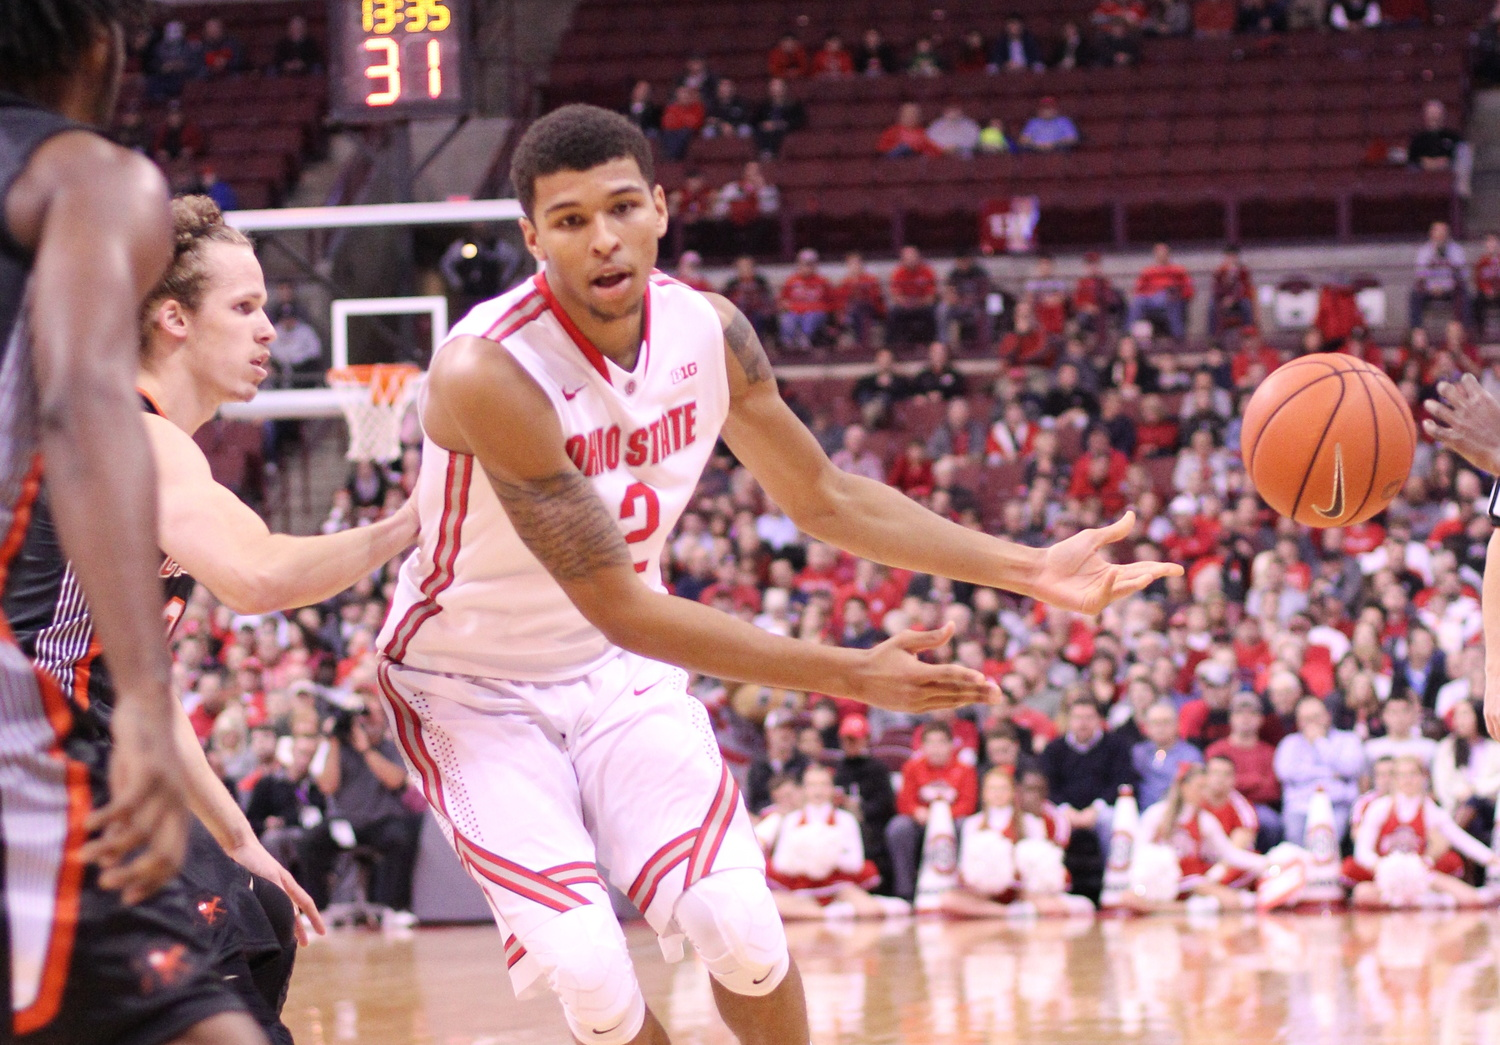 Sophomore forward Marc Loving (2) passes the ball during a game against Campbell on Nov. 26 at the Schottenstein Center. OSU won, 91-64. Credit: Ed Momot / For The Lantern